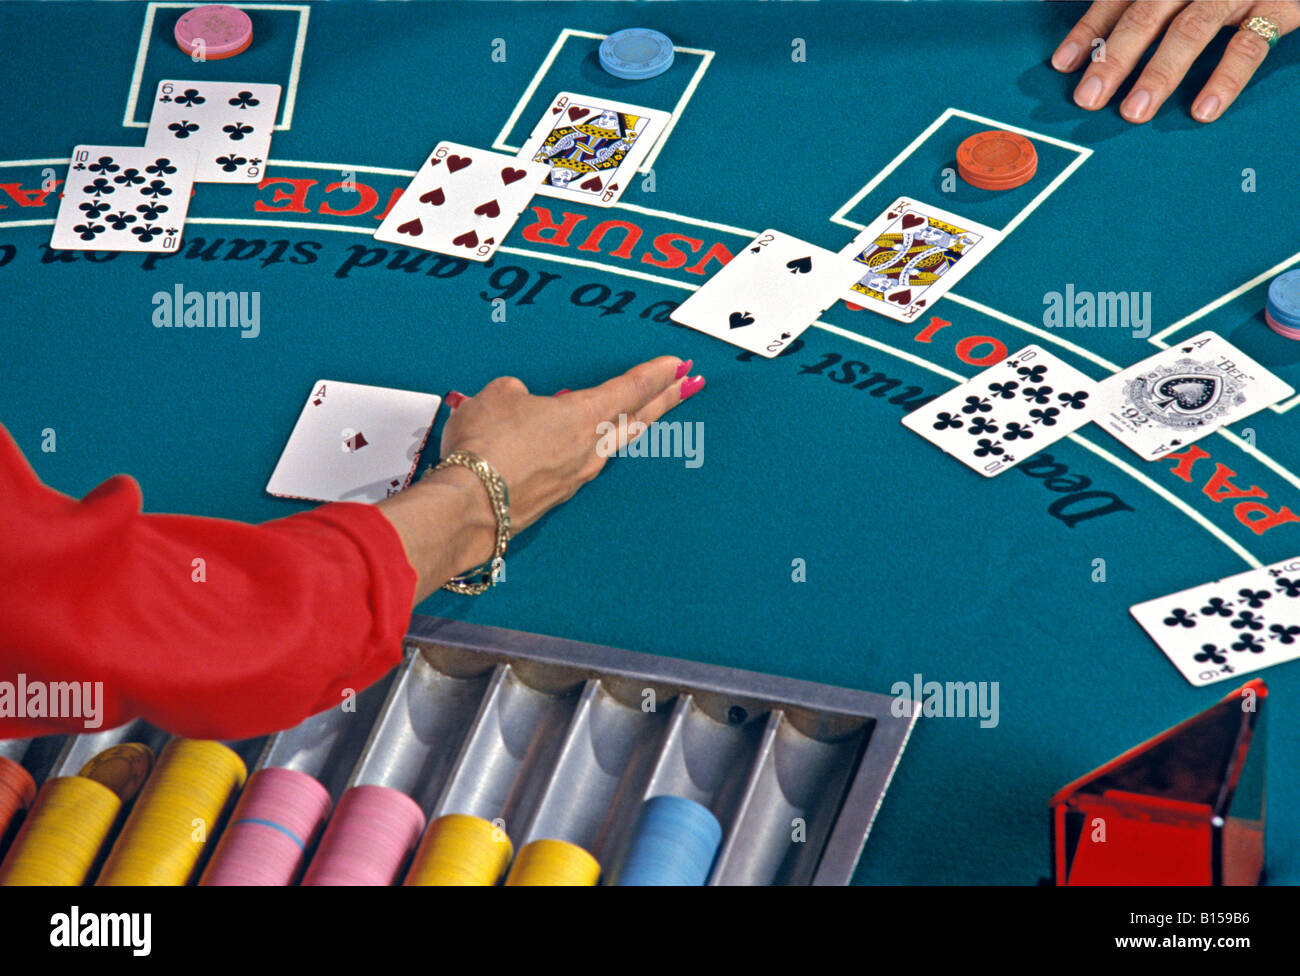 A female blackjack dealer points to cards during a game of 21 in a casino. - Stock Image